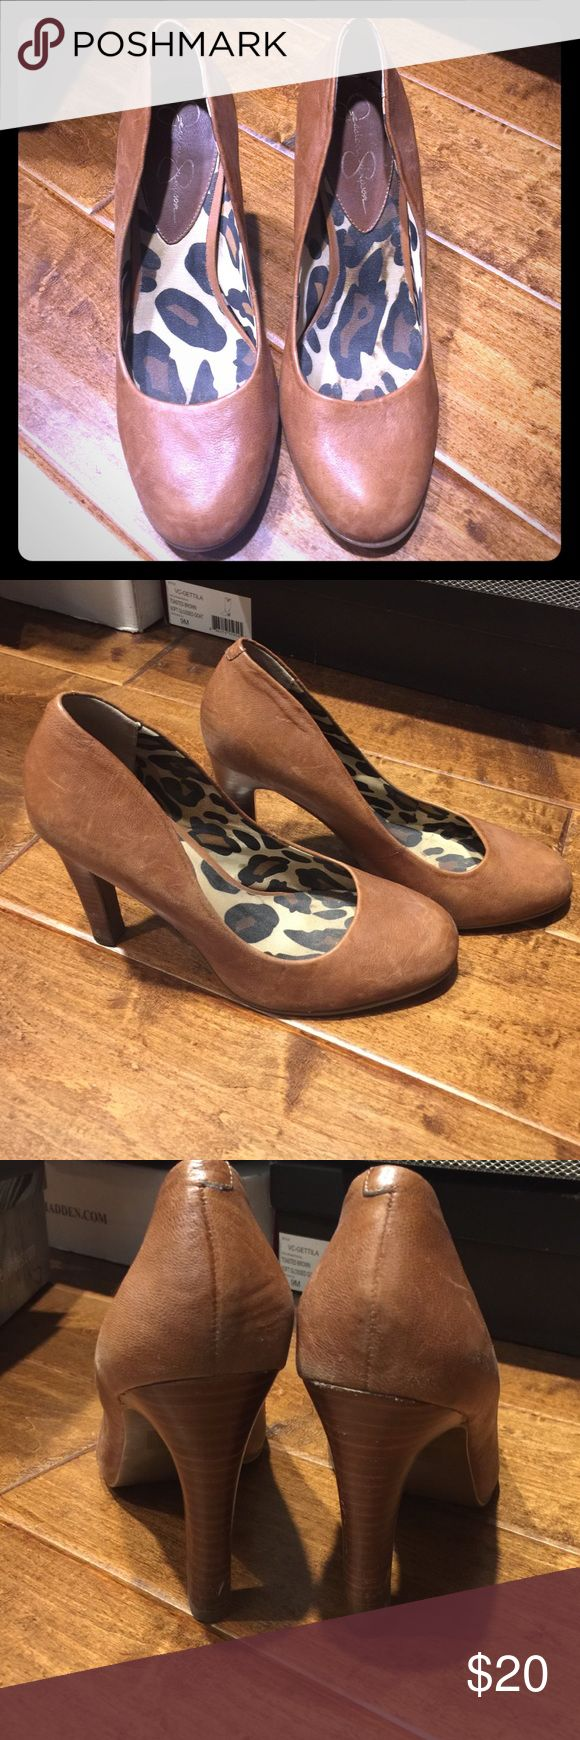 Jessica Simpson pumps Round toe brown leather pumps with a wood heel! Minor scuff on the heel and some normal leather aging. Jessica Simpson Shoes Heels